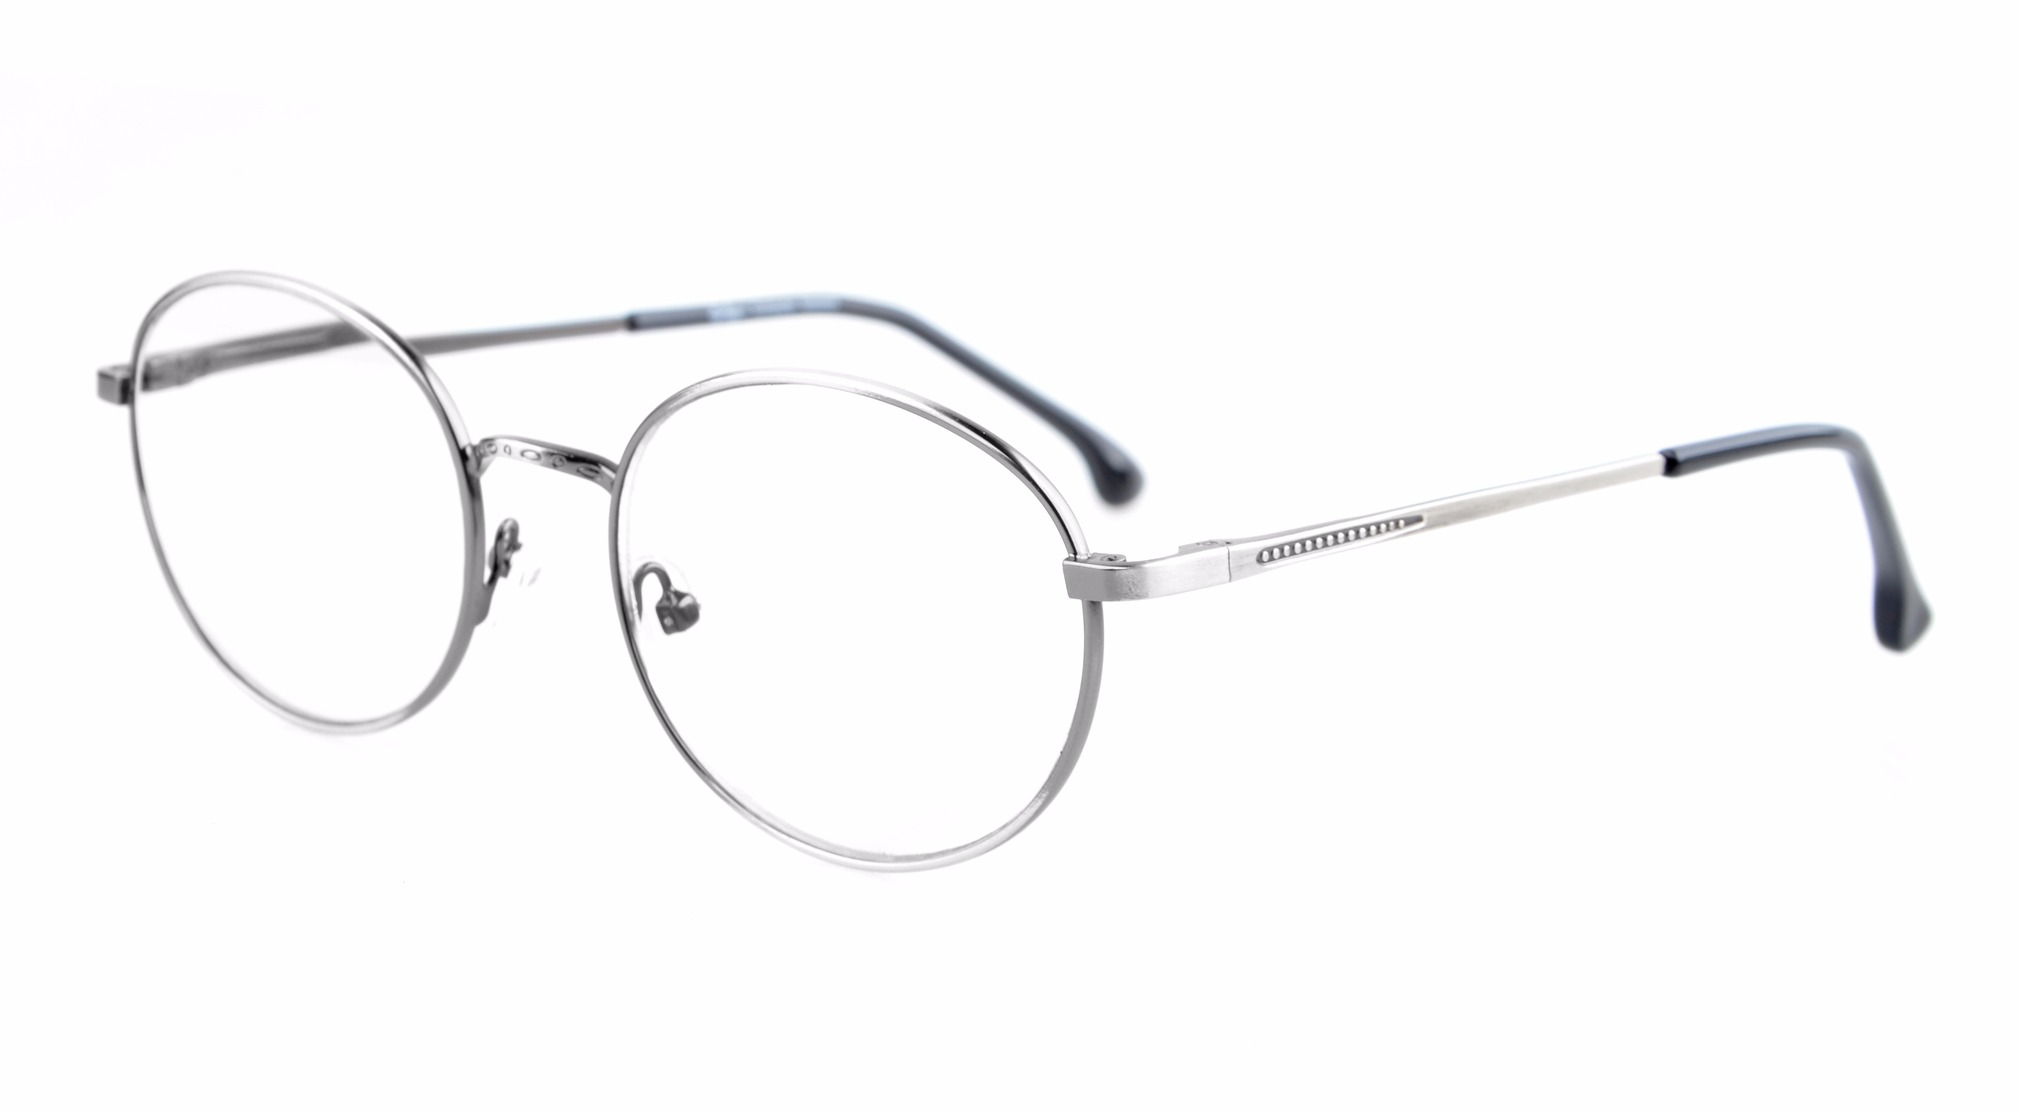 Eyekepper Quality Spring Temples Oval Round Glasses Eyeglasses Frame R1616-Anti Silver-0.0